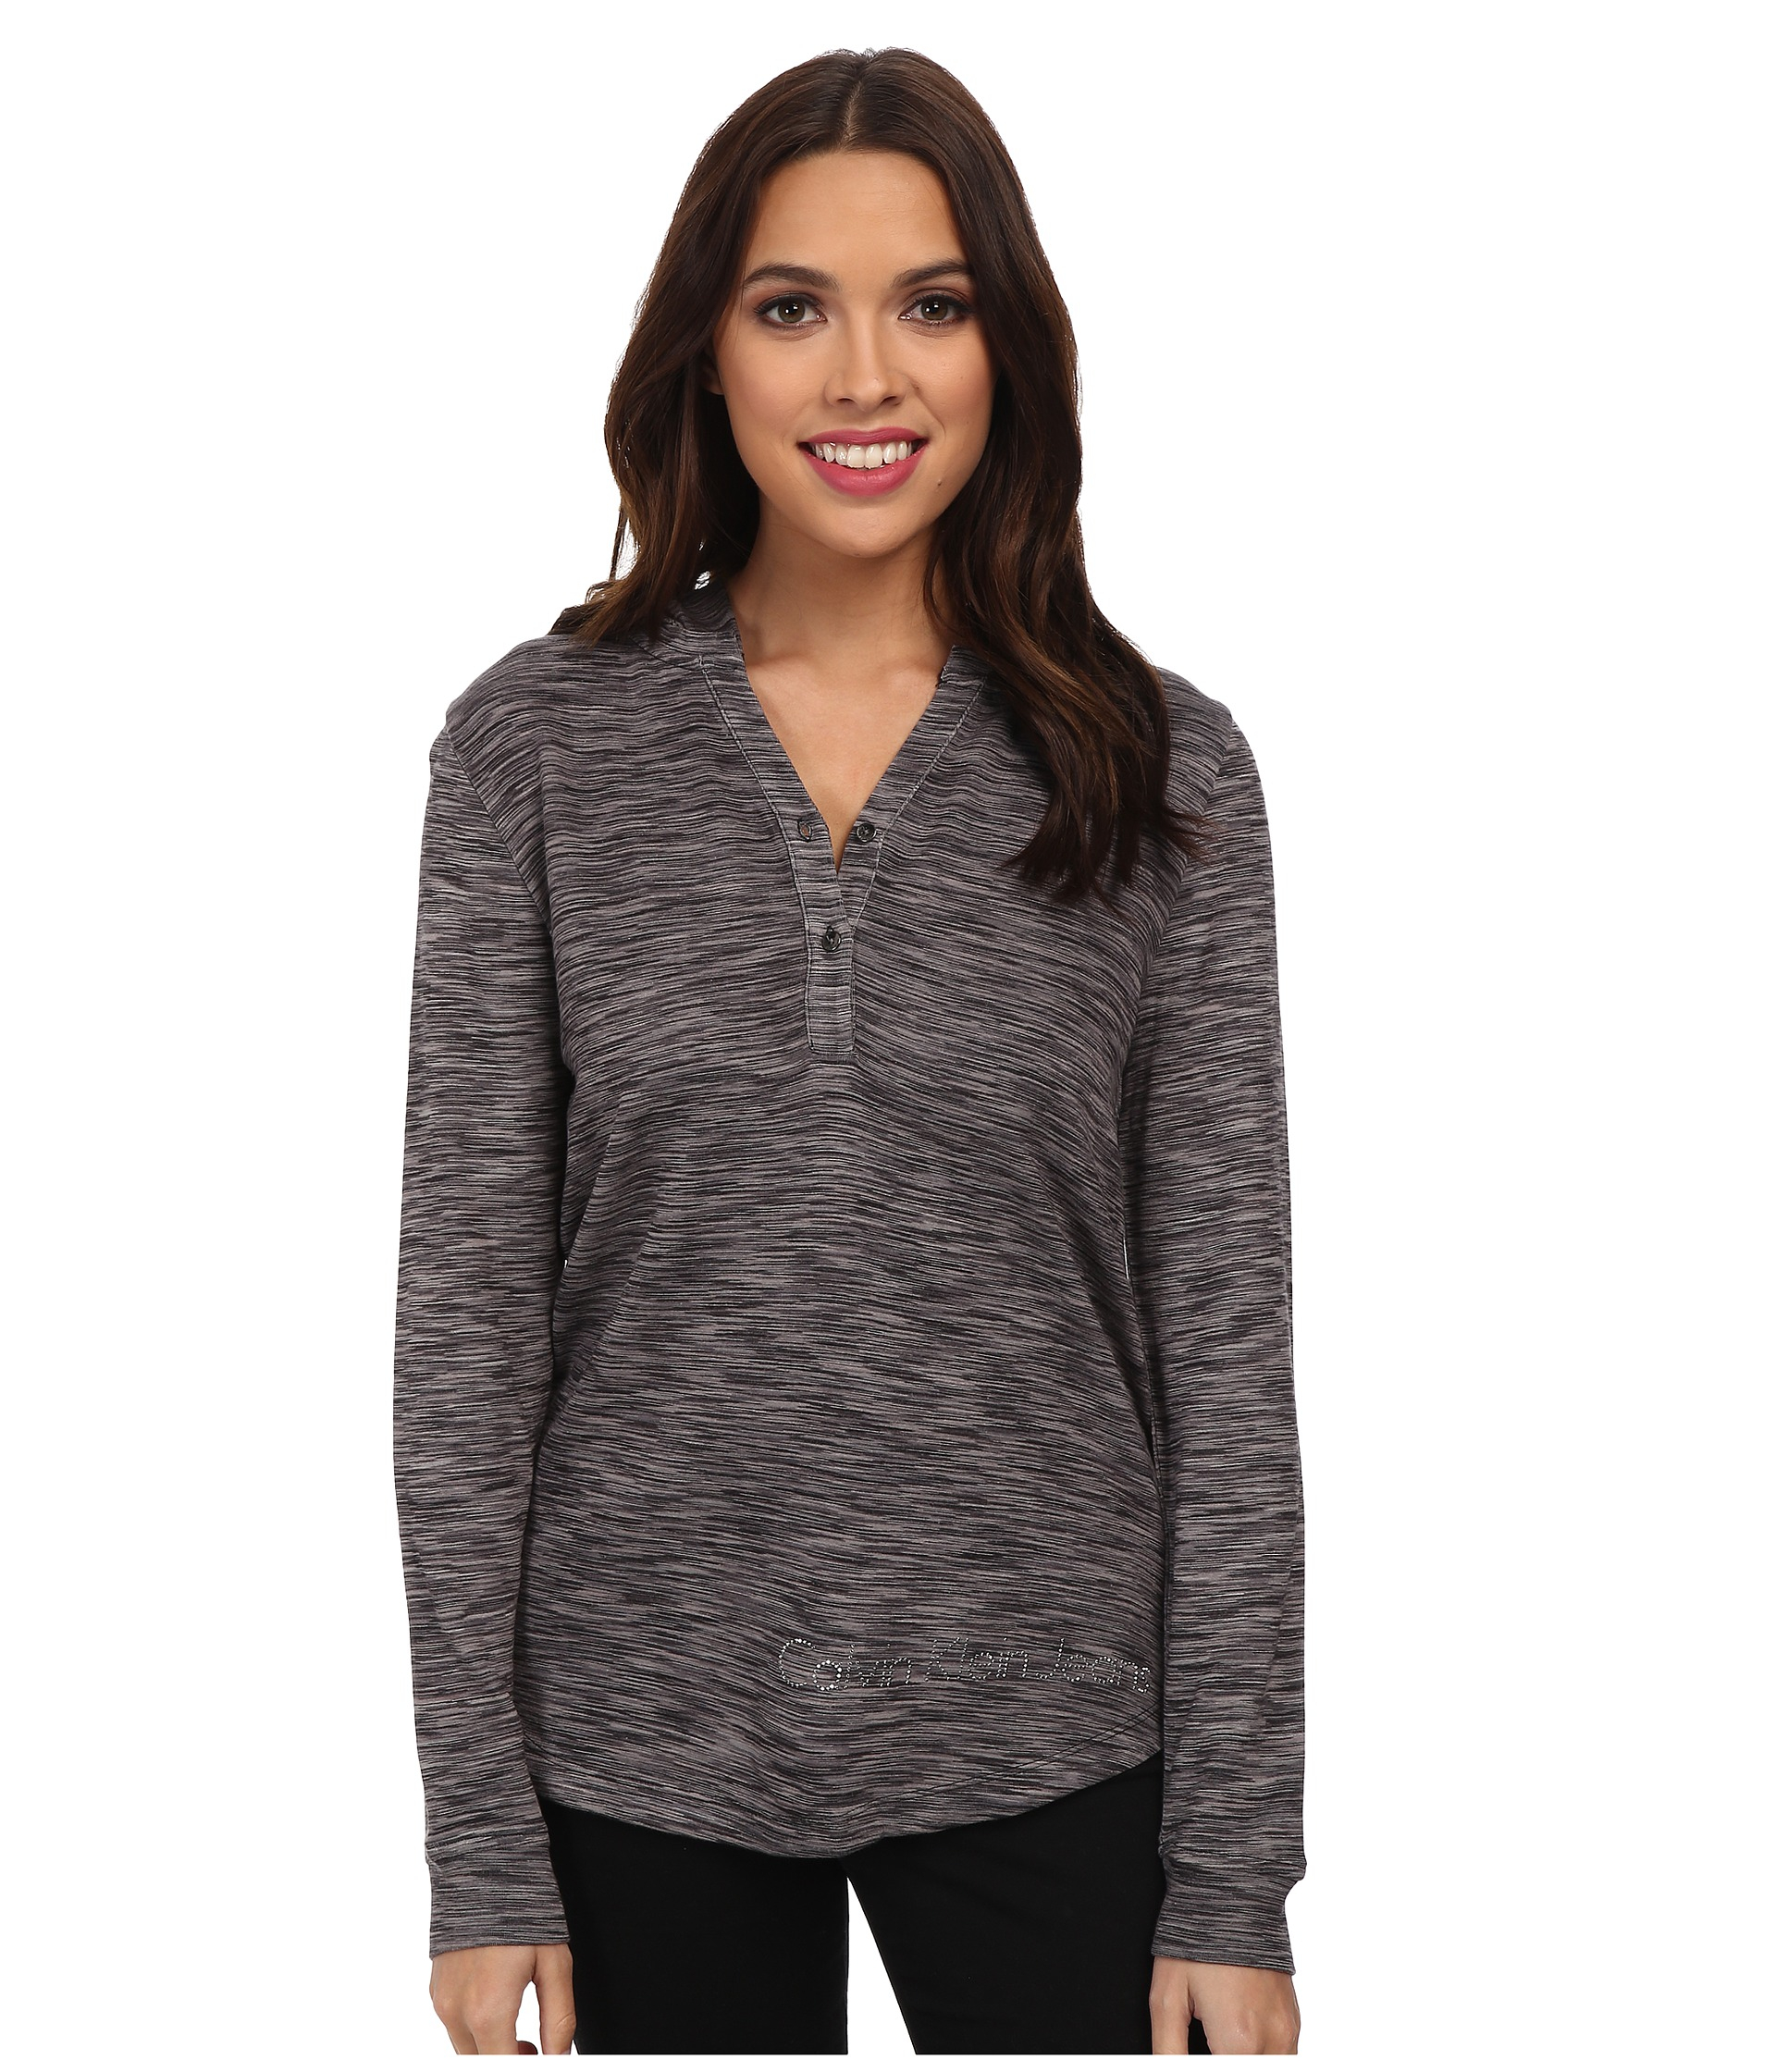 calvin klein jeans l s henley hoodie in gray lyst. Black Bedroom Furniture Sets. Home Design Ideas